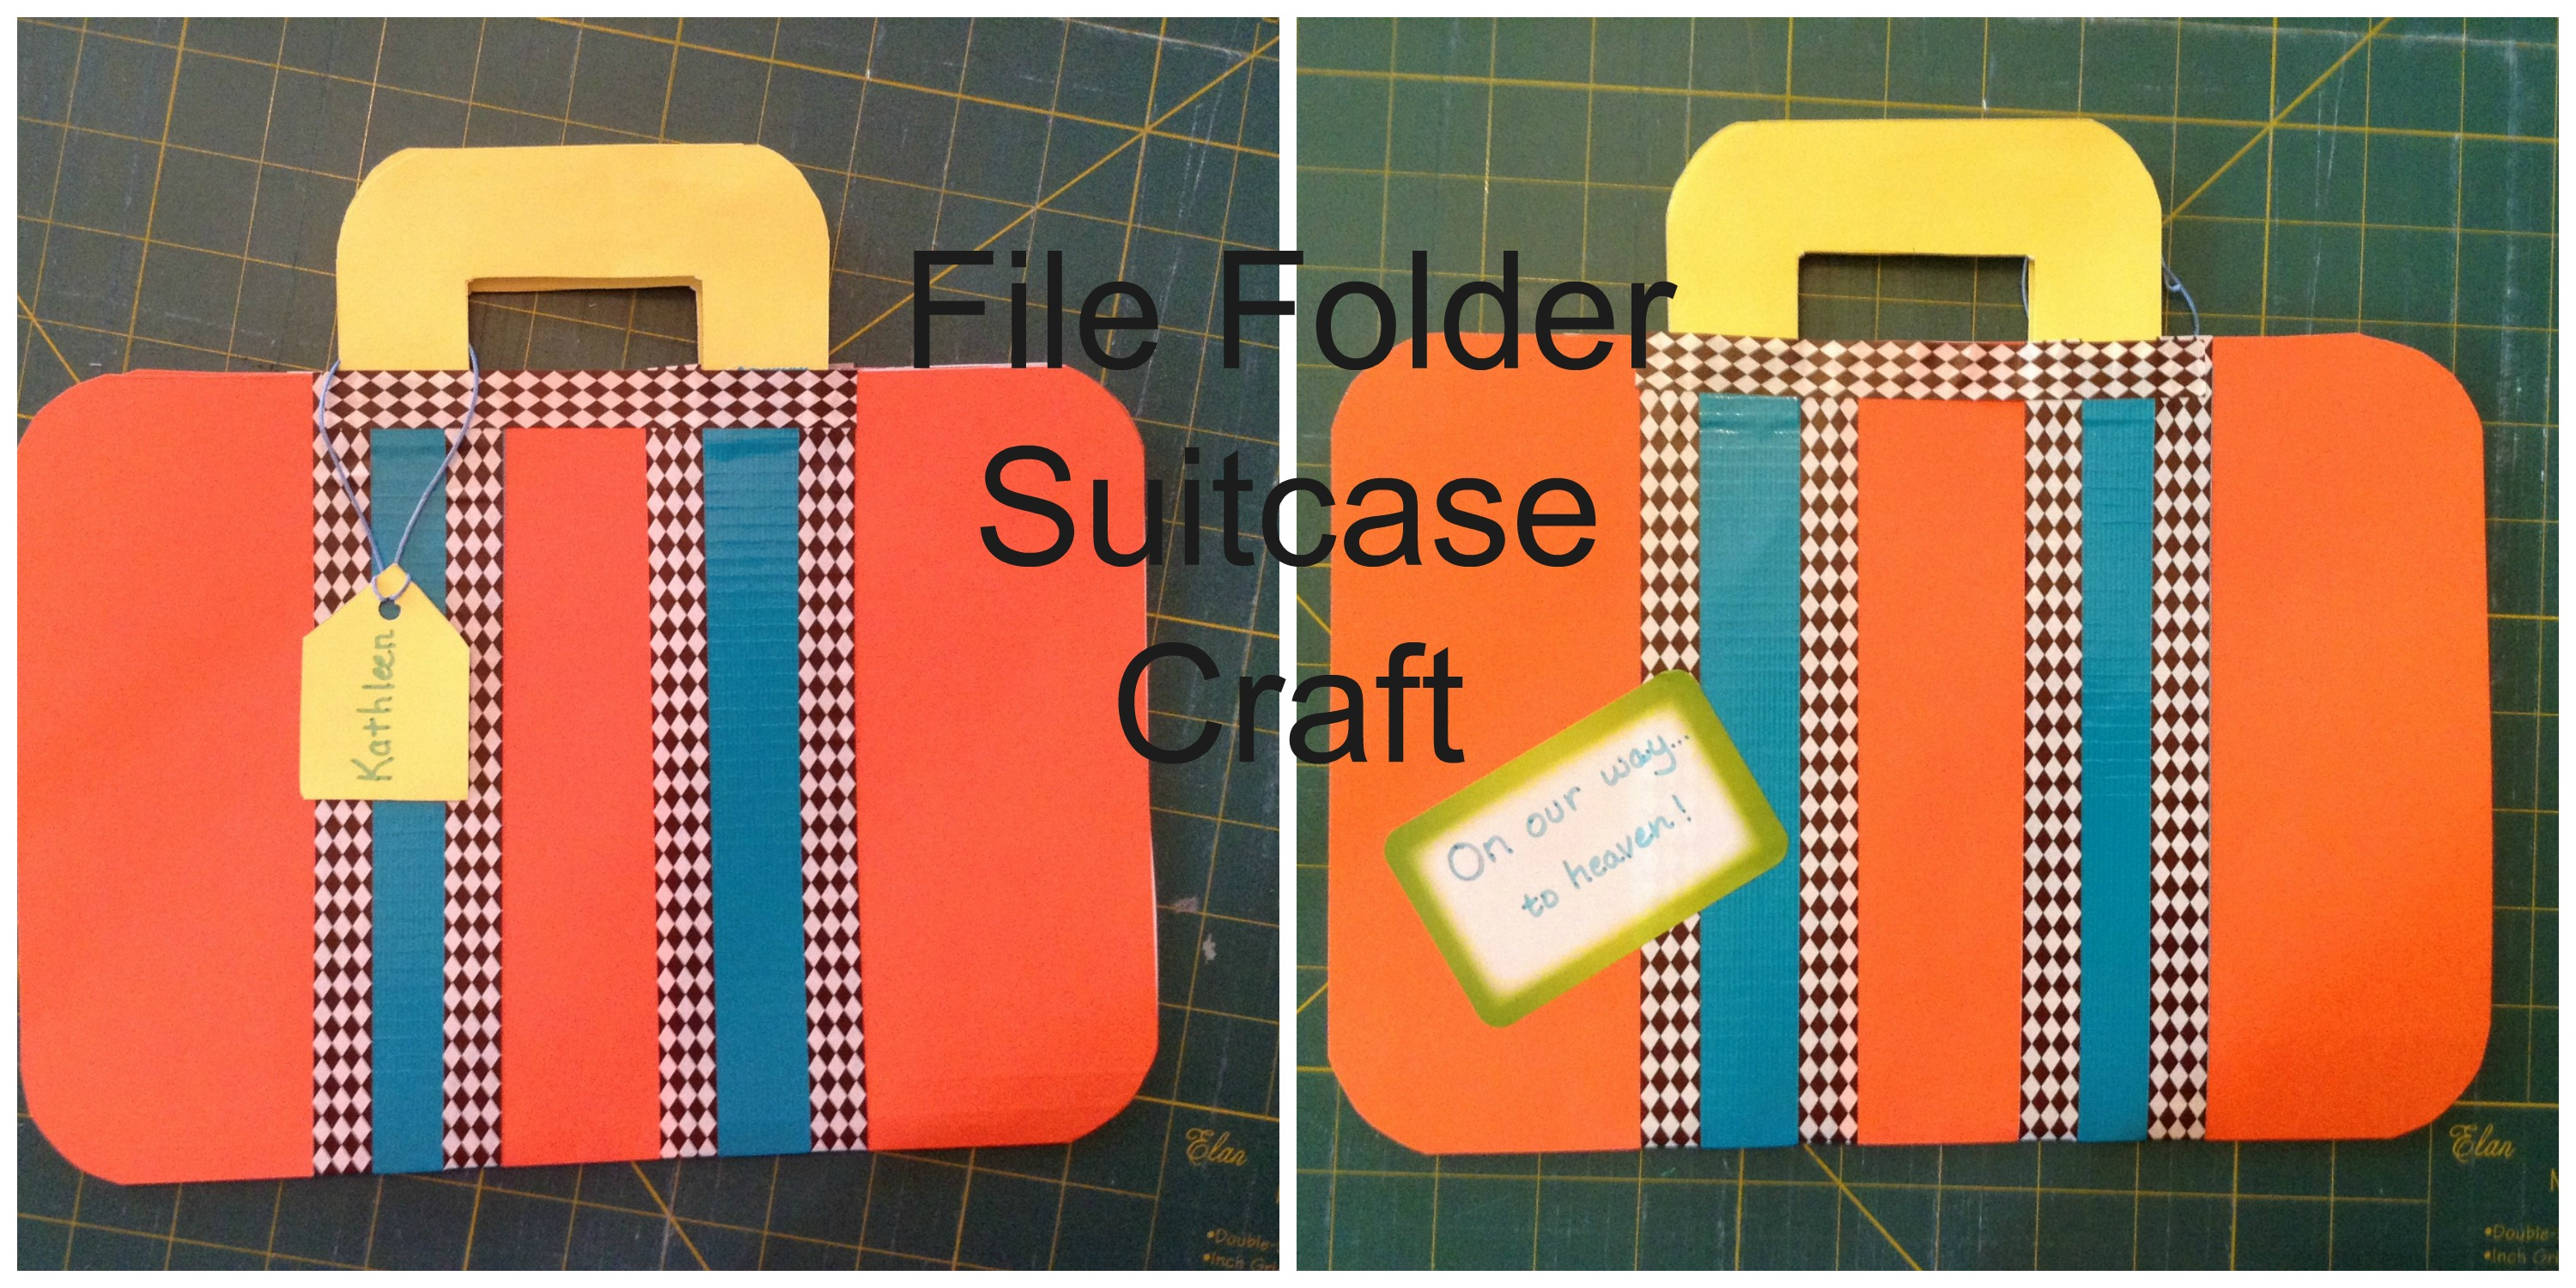 file folder suitcase craft casting my net